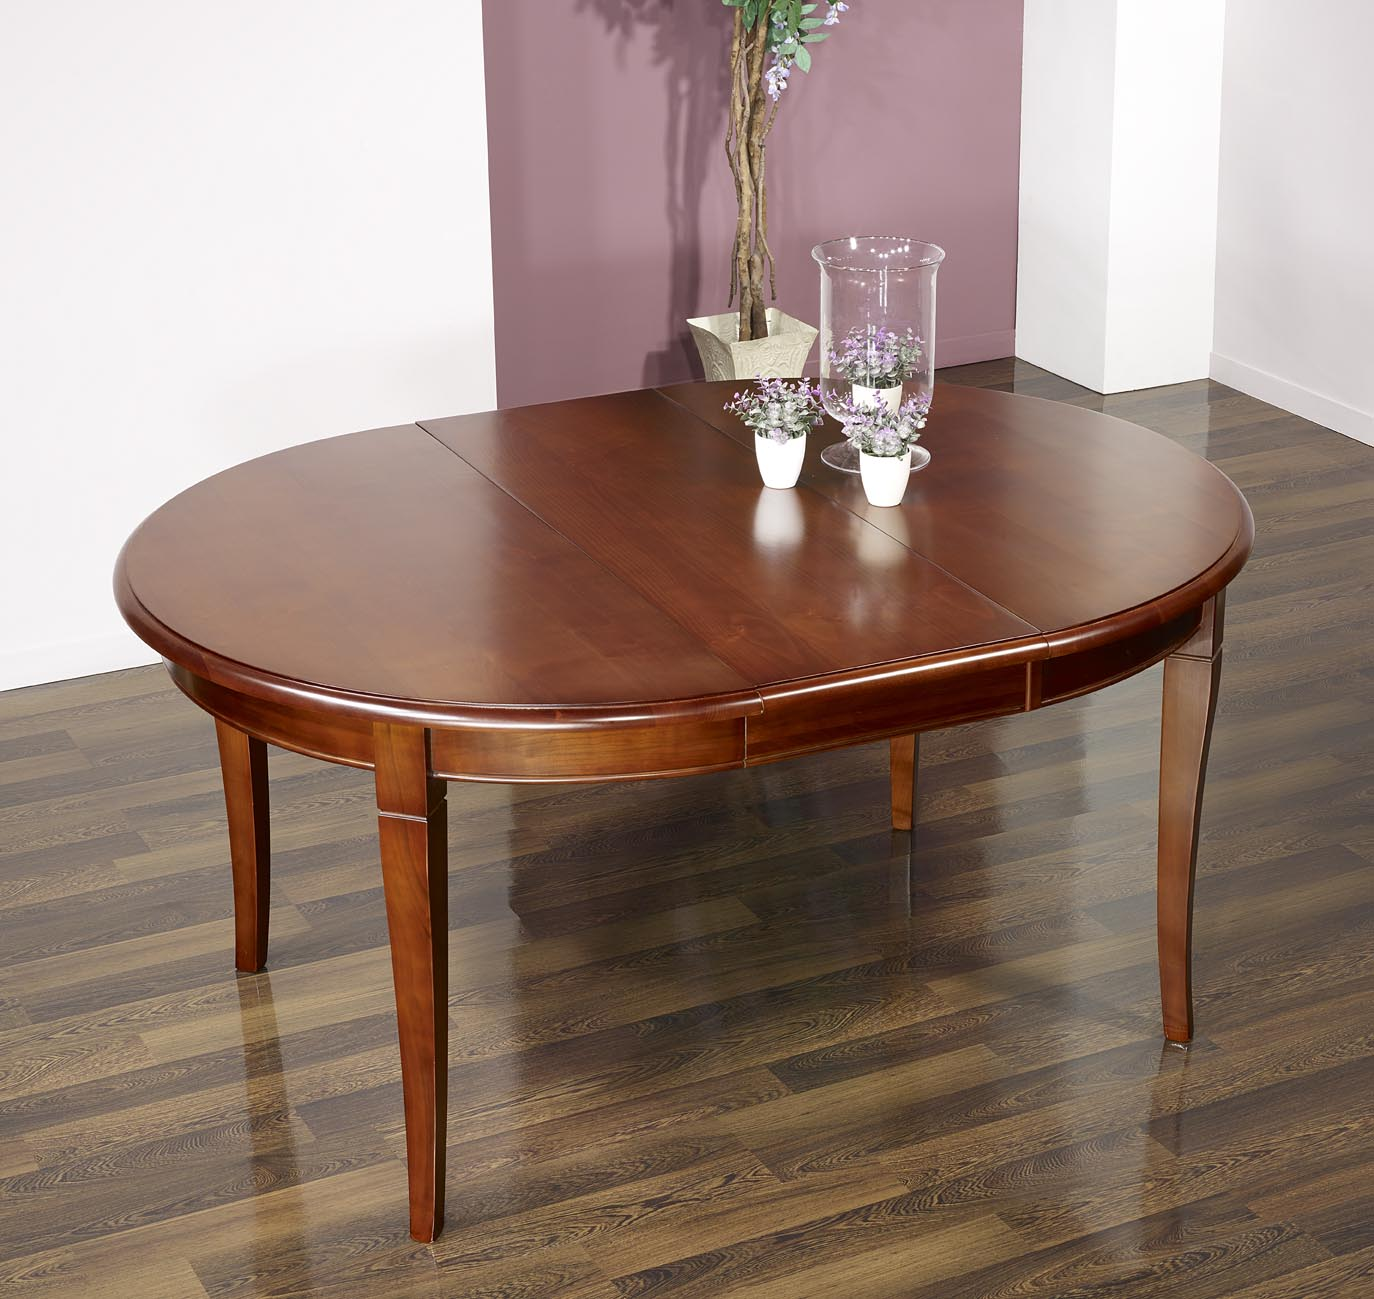 Table ronde 4 pieds sabres en merisier massif de style for Table design 4 pieds